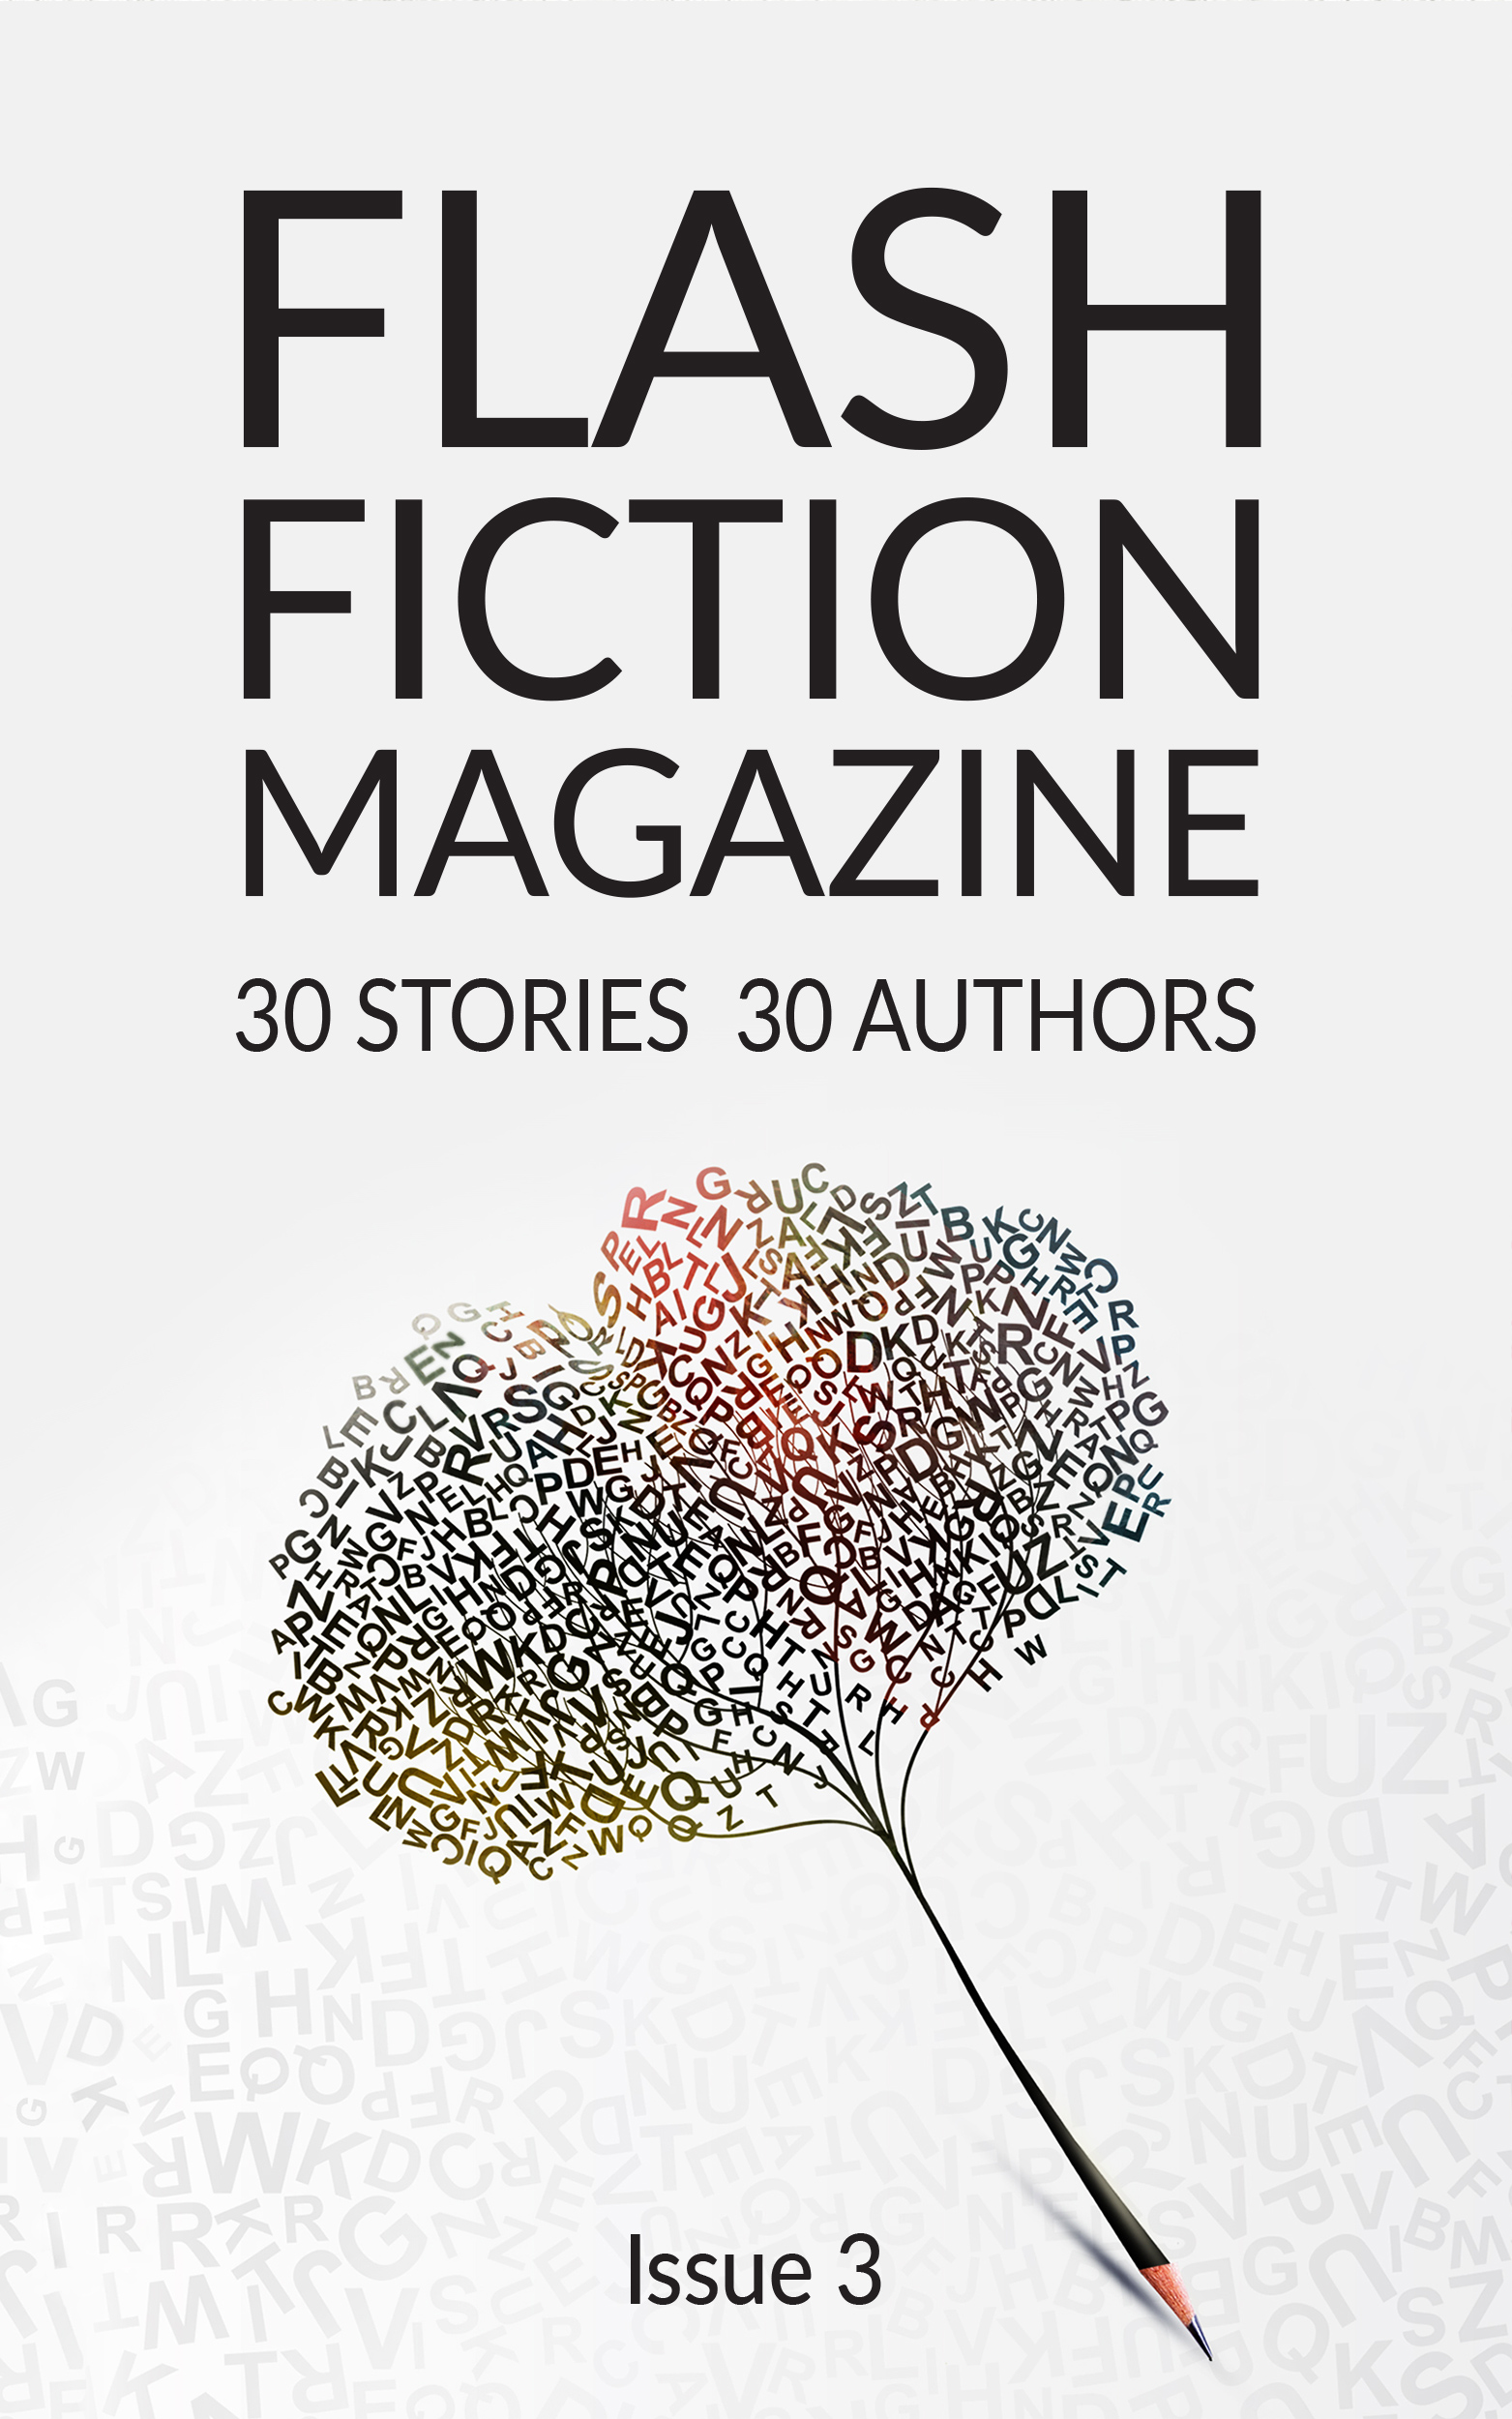 Flash Fiction Magazine - Issue 3